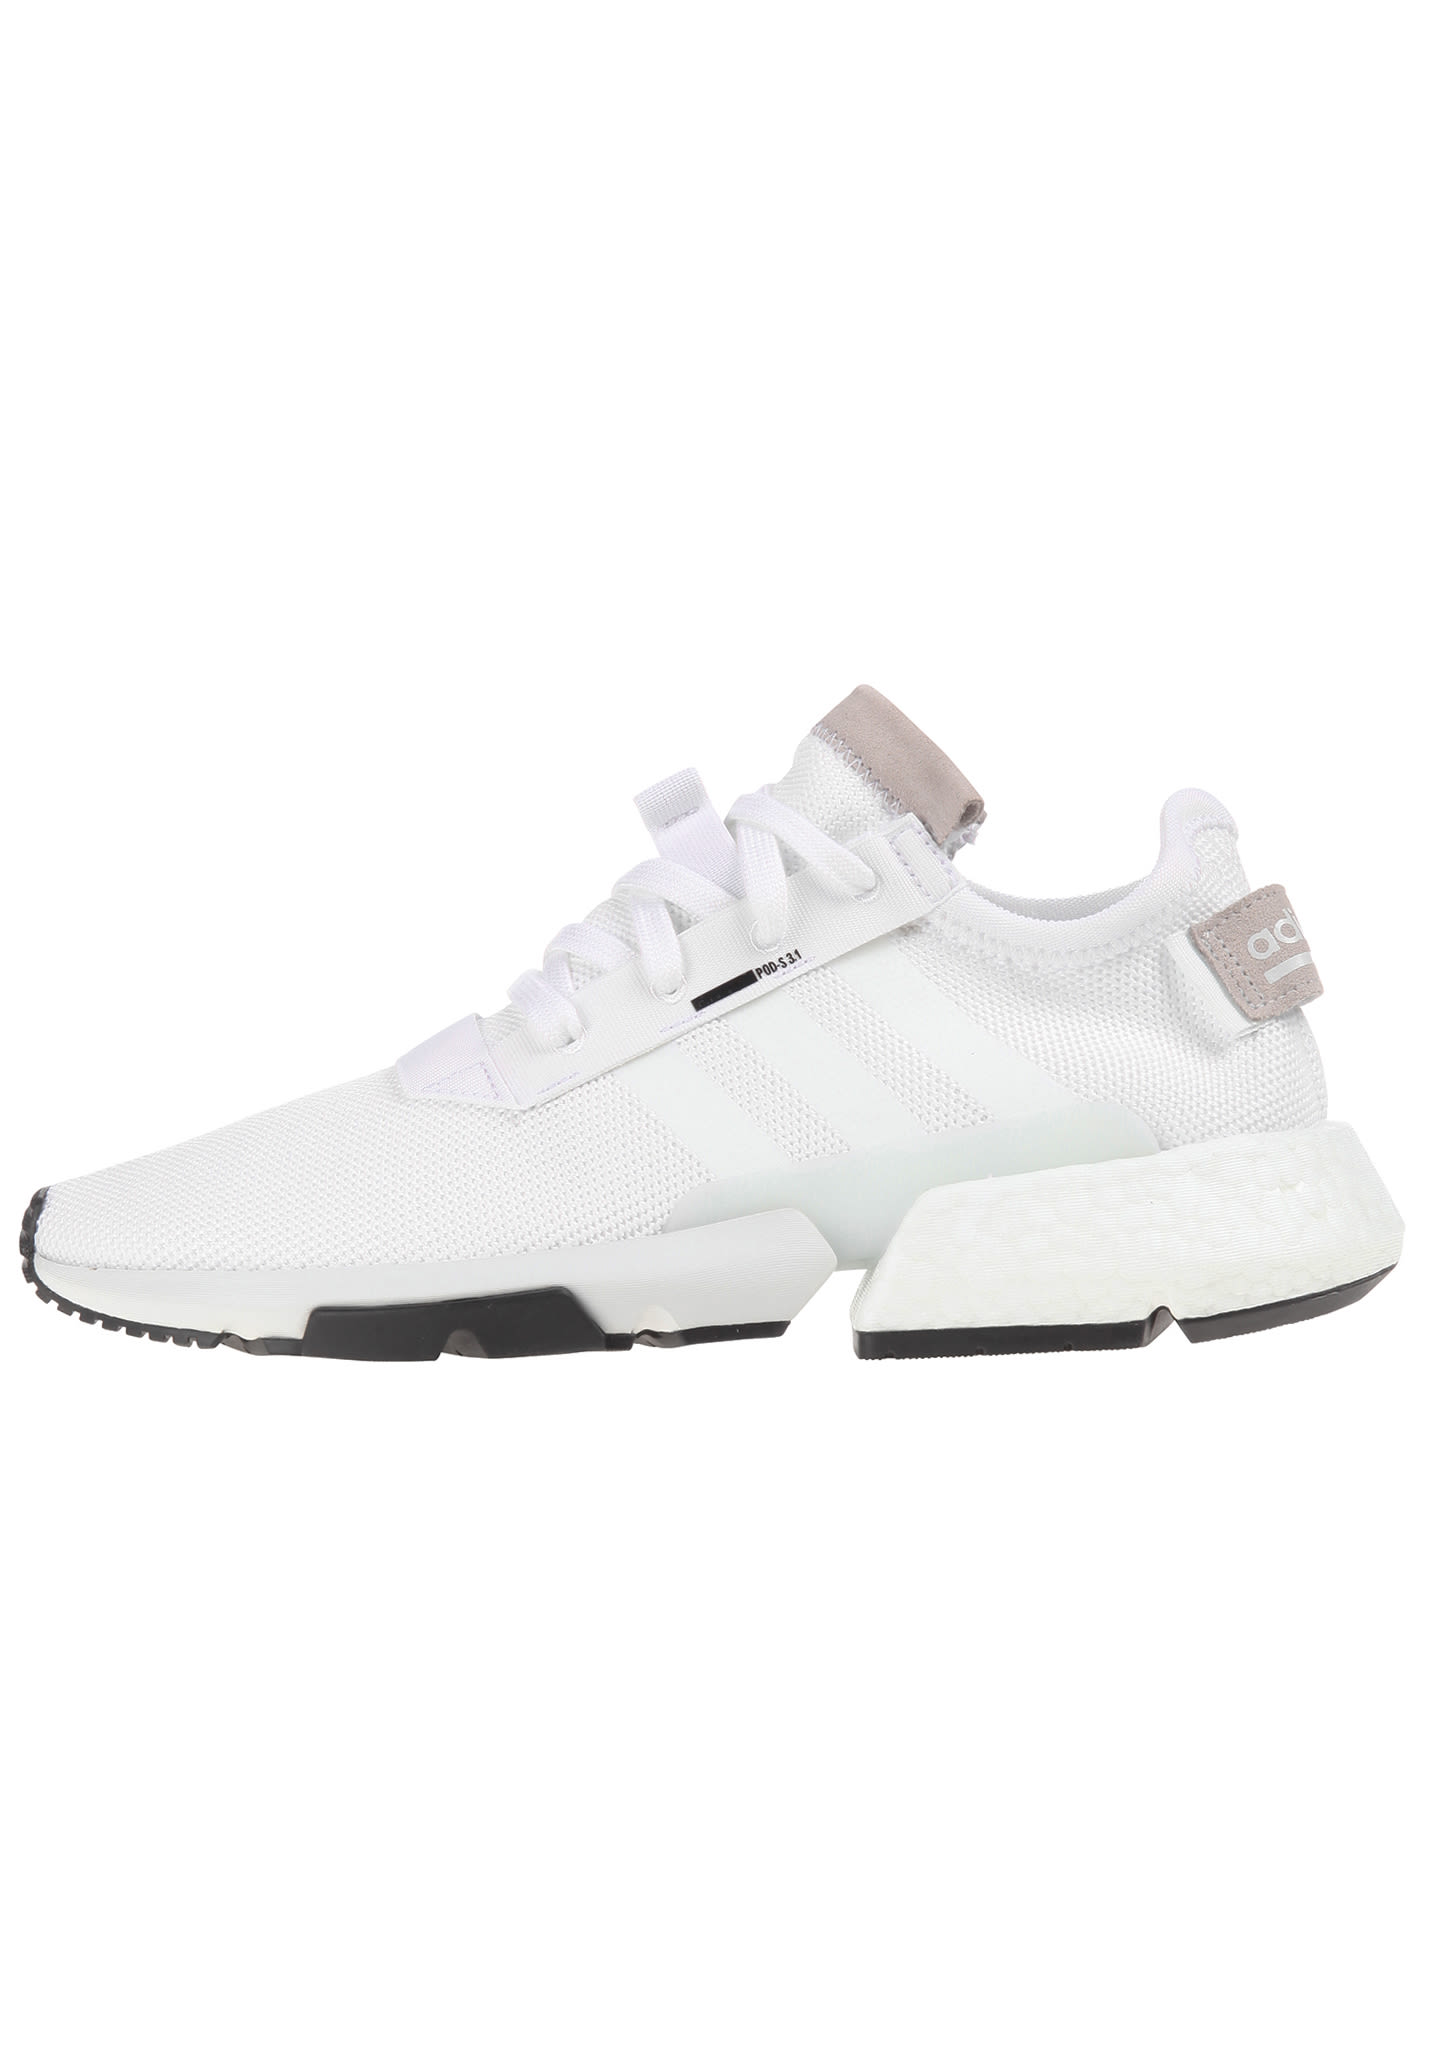 separation shoes 305e4 b8a8a ADIDAS ORIGINALS POD-S3.1 - Sneakers for Men - White